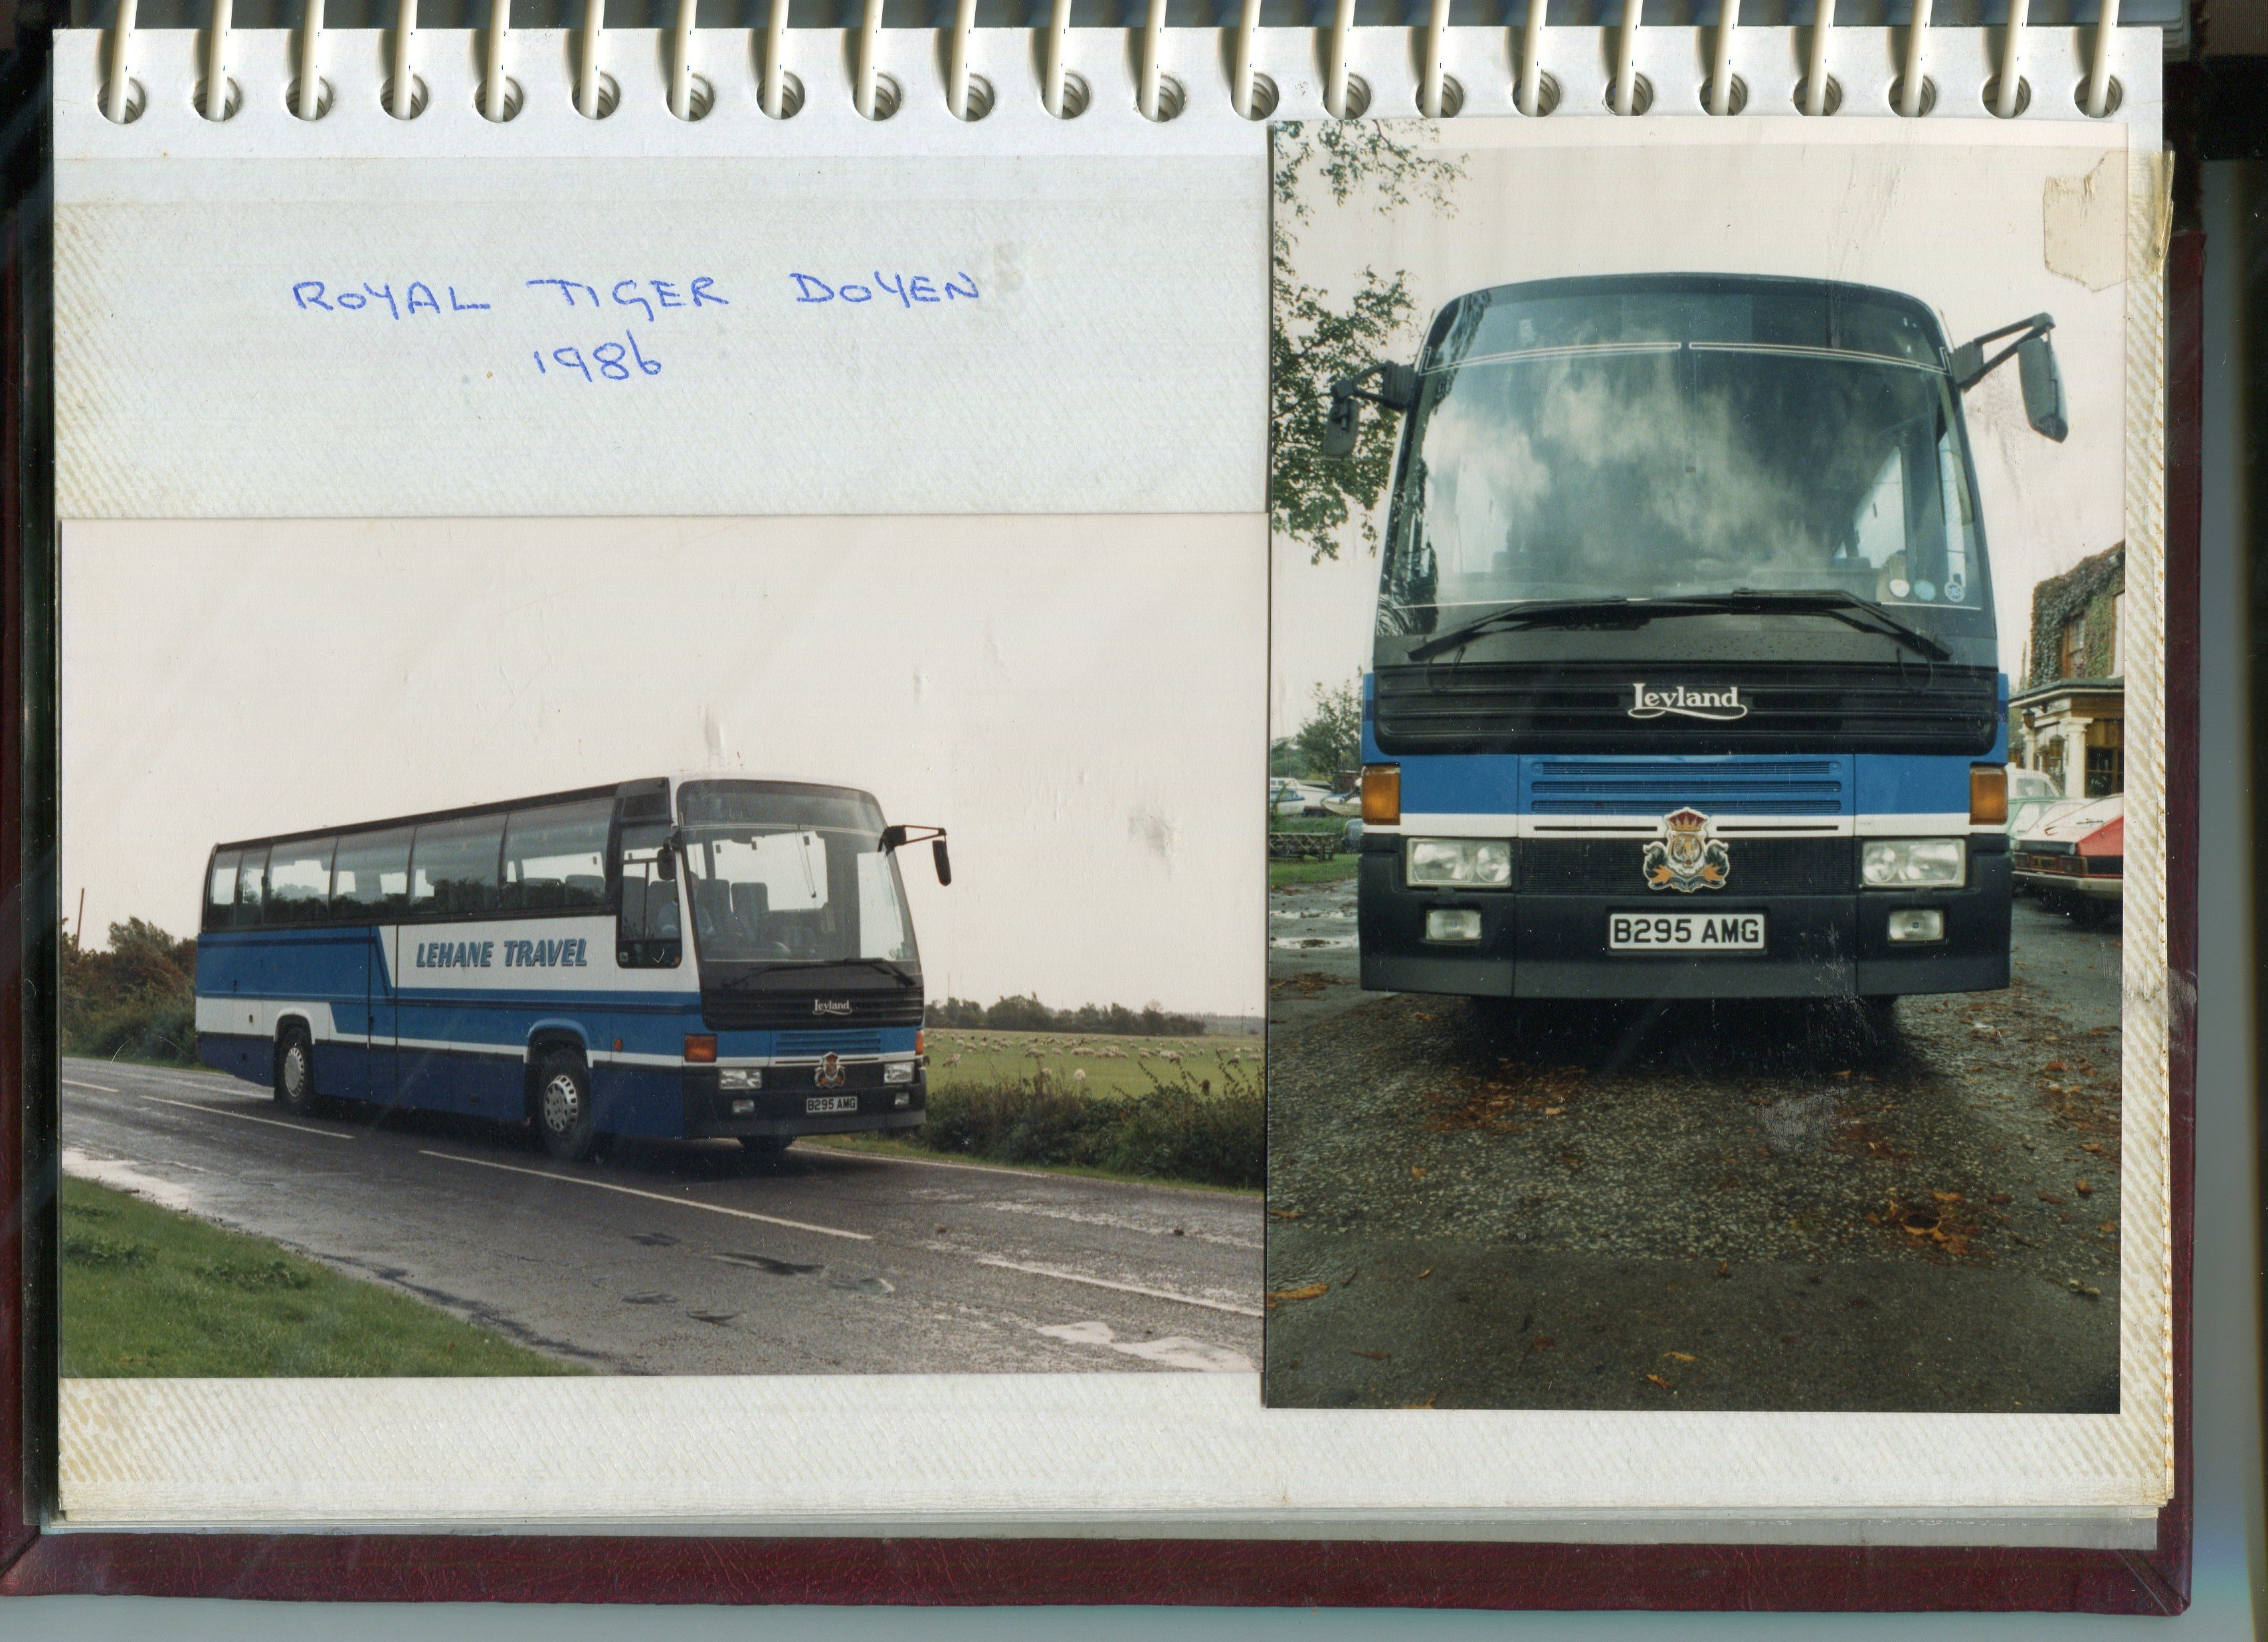 side and front view of the bus